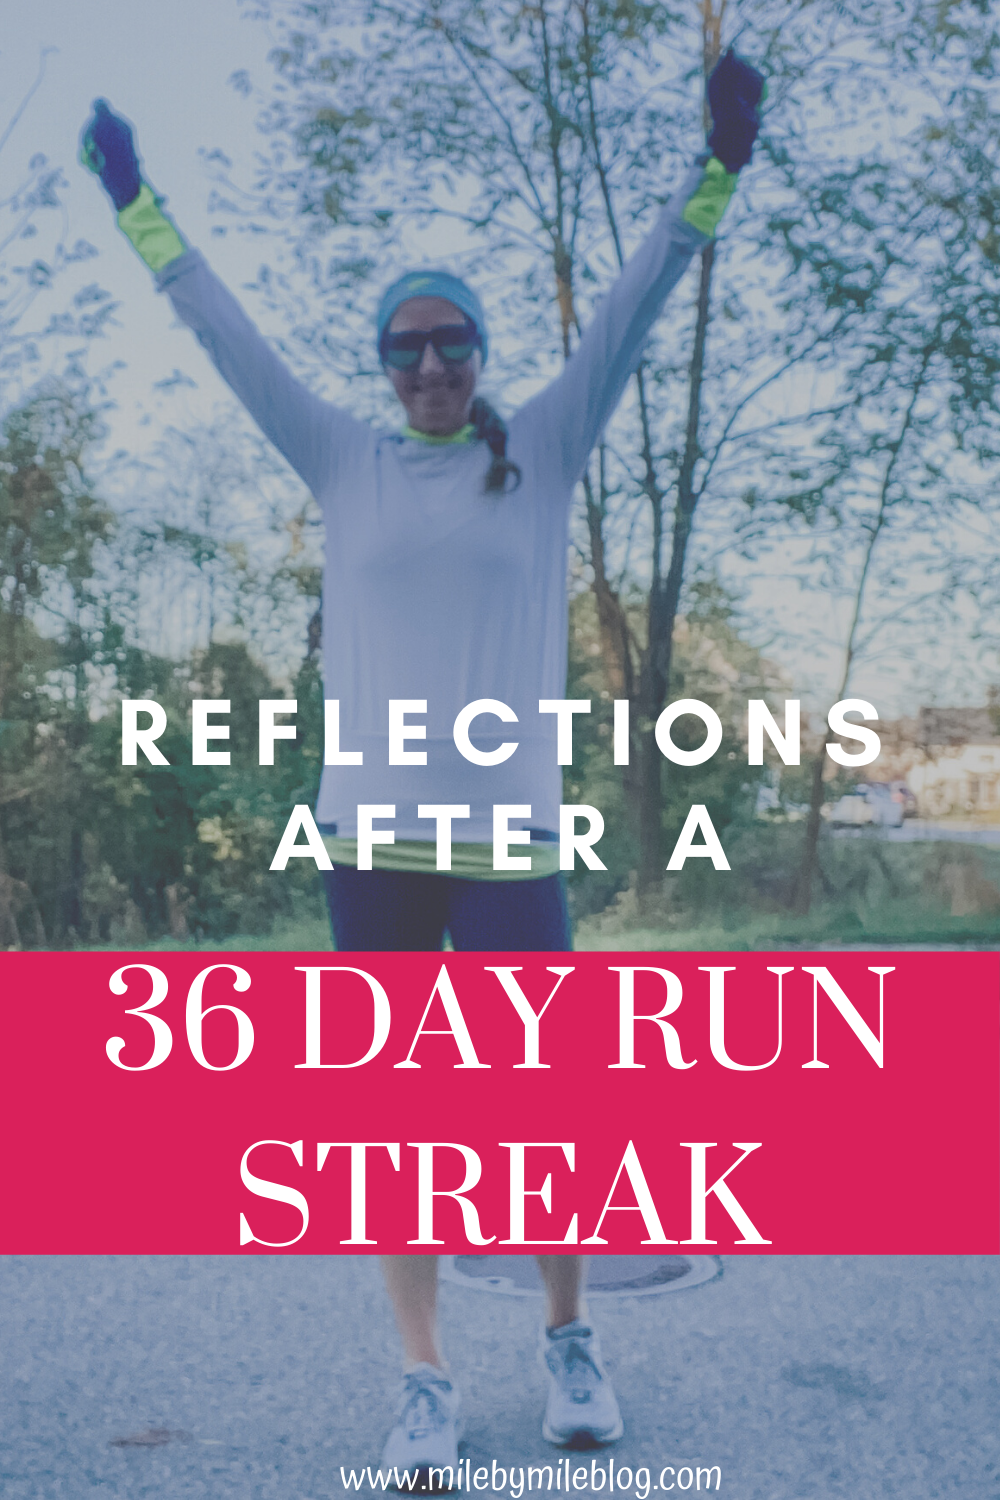 After my 36 day run streak, there are a few things I would do differently. Here is what I learned from my first run streak and tips what how to plan your runs if you decide to try a run streak.